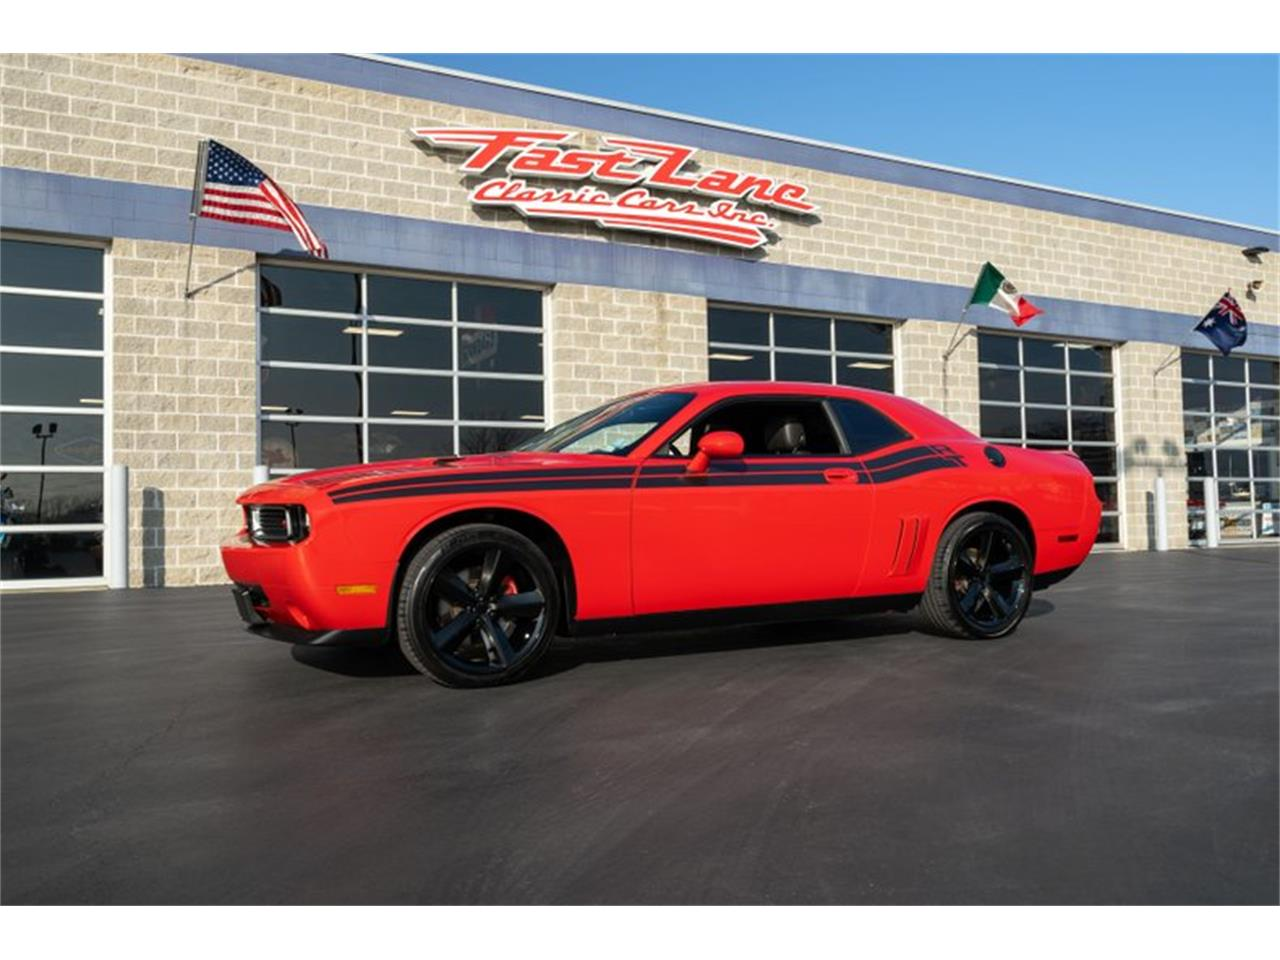 for sale 2010 dodge challenger in st. charles, missouri cars - saint charles, mo at geebo